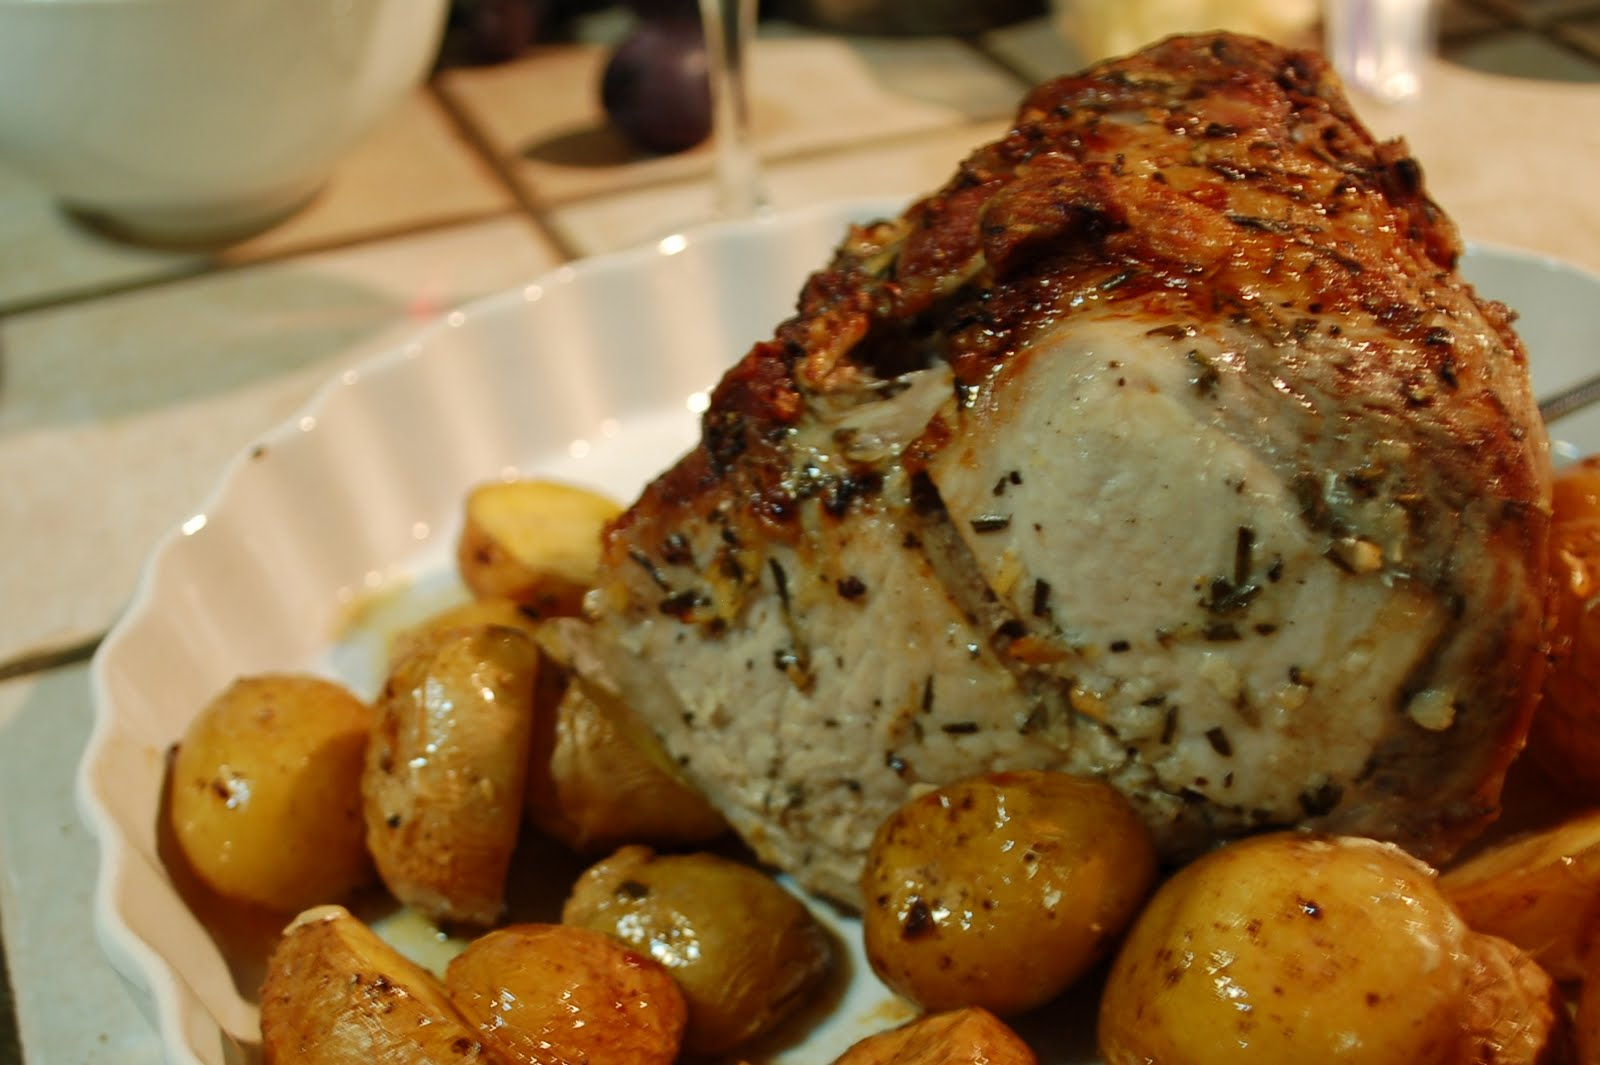 The spice garden easy pork roast florentine style - Christmas pork roast five recipes ...